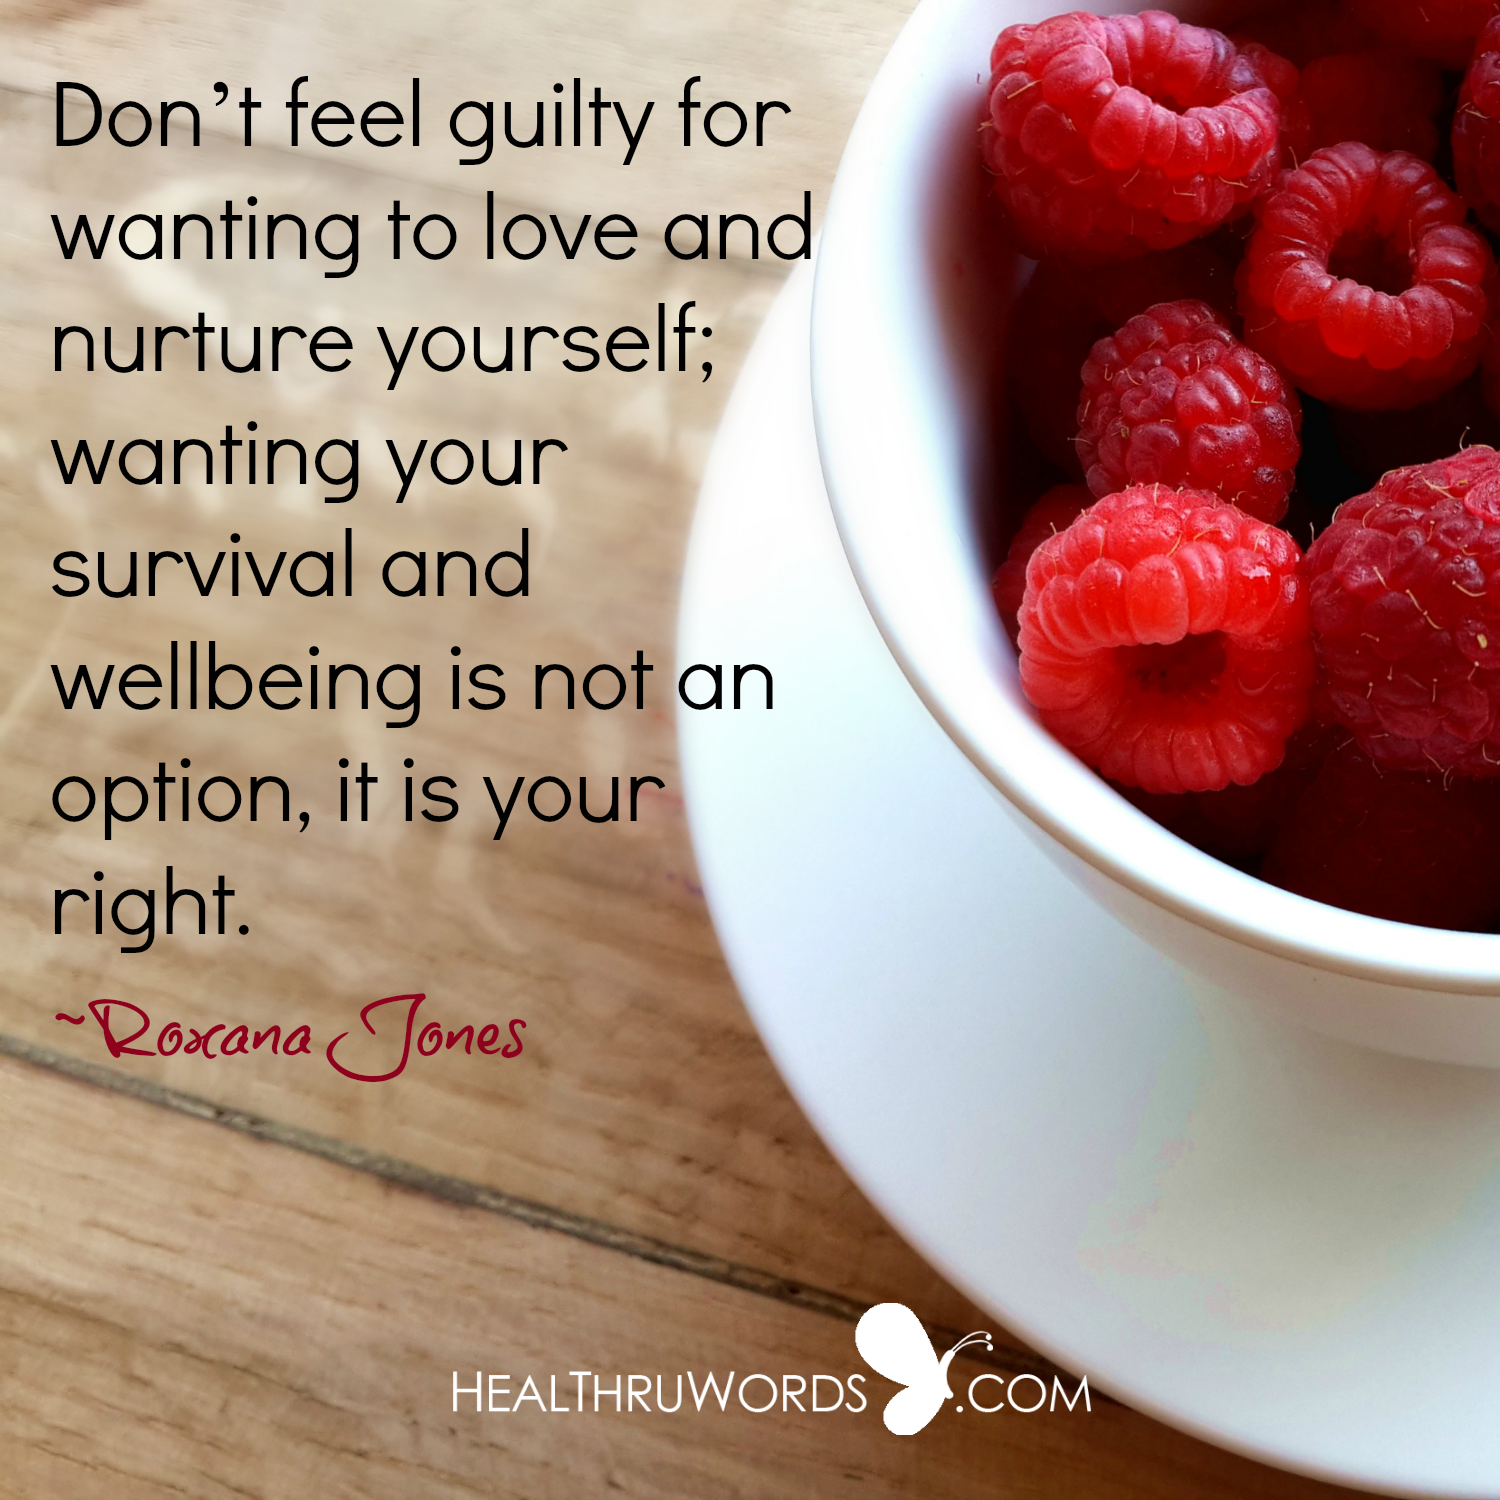 Inspirational Image: Your Wellbeing First